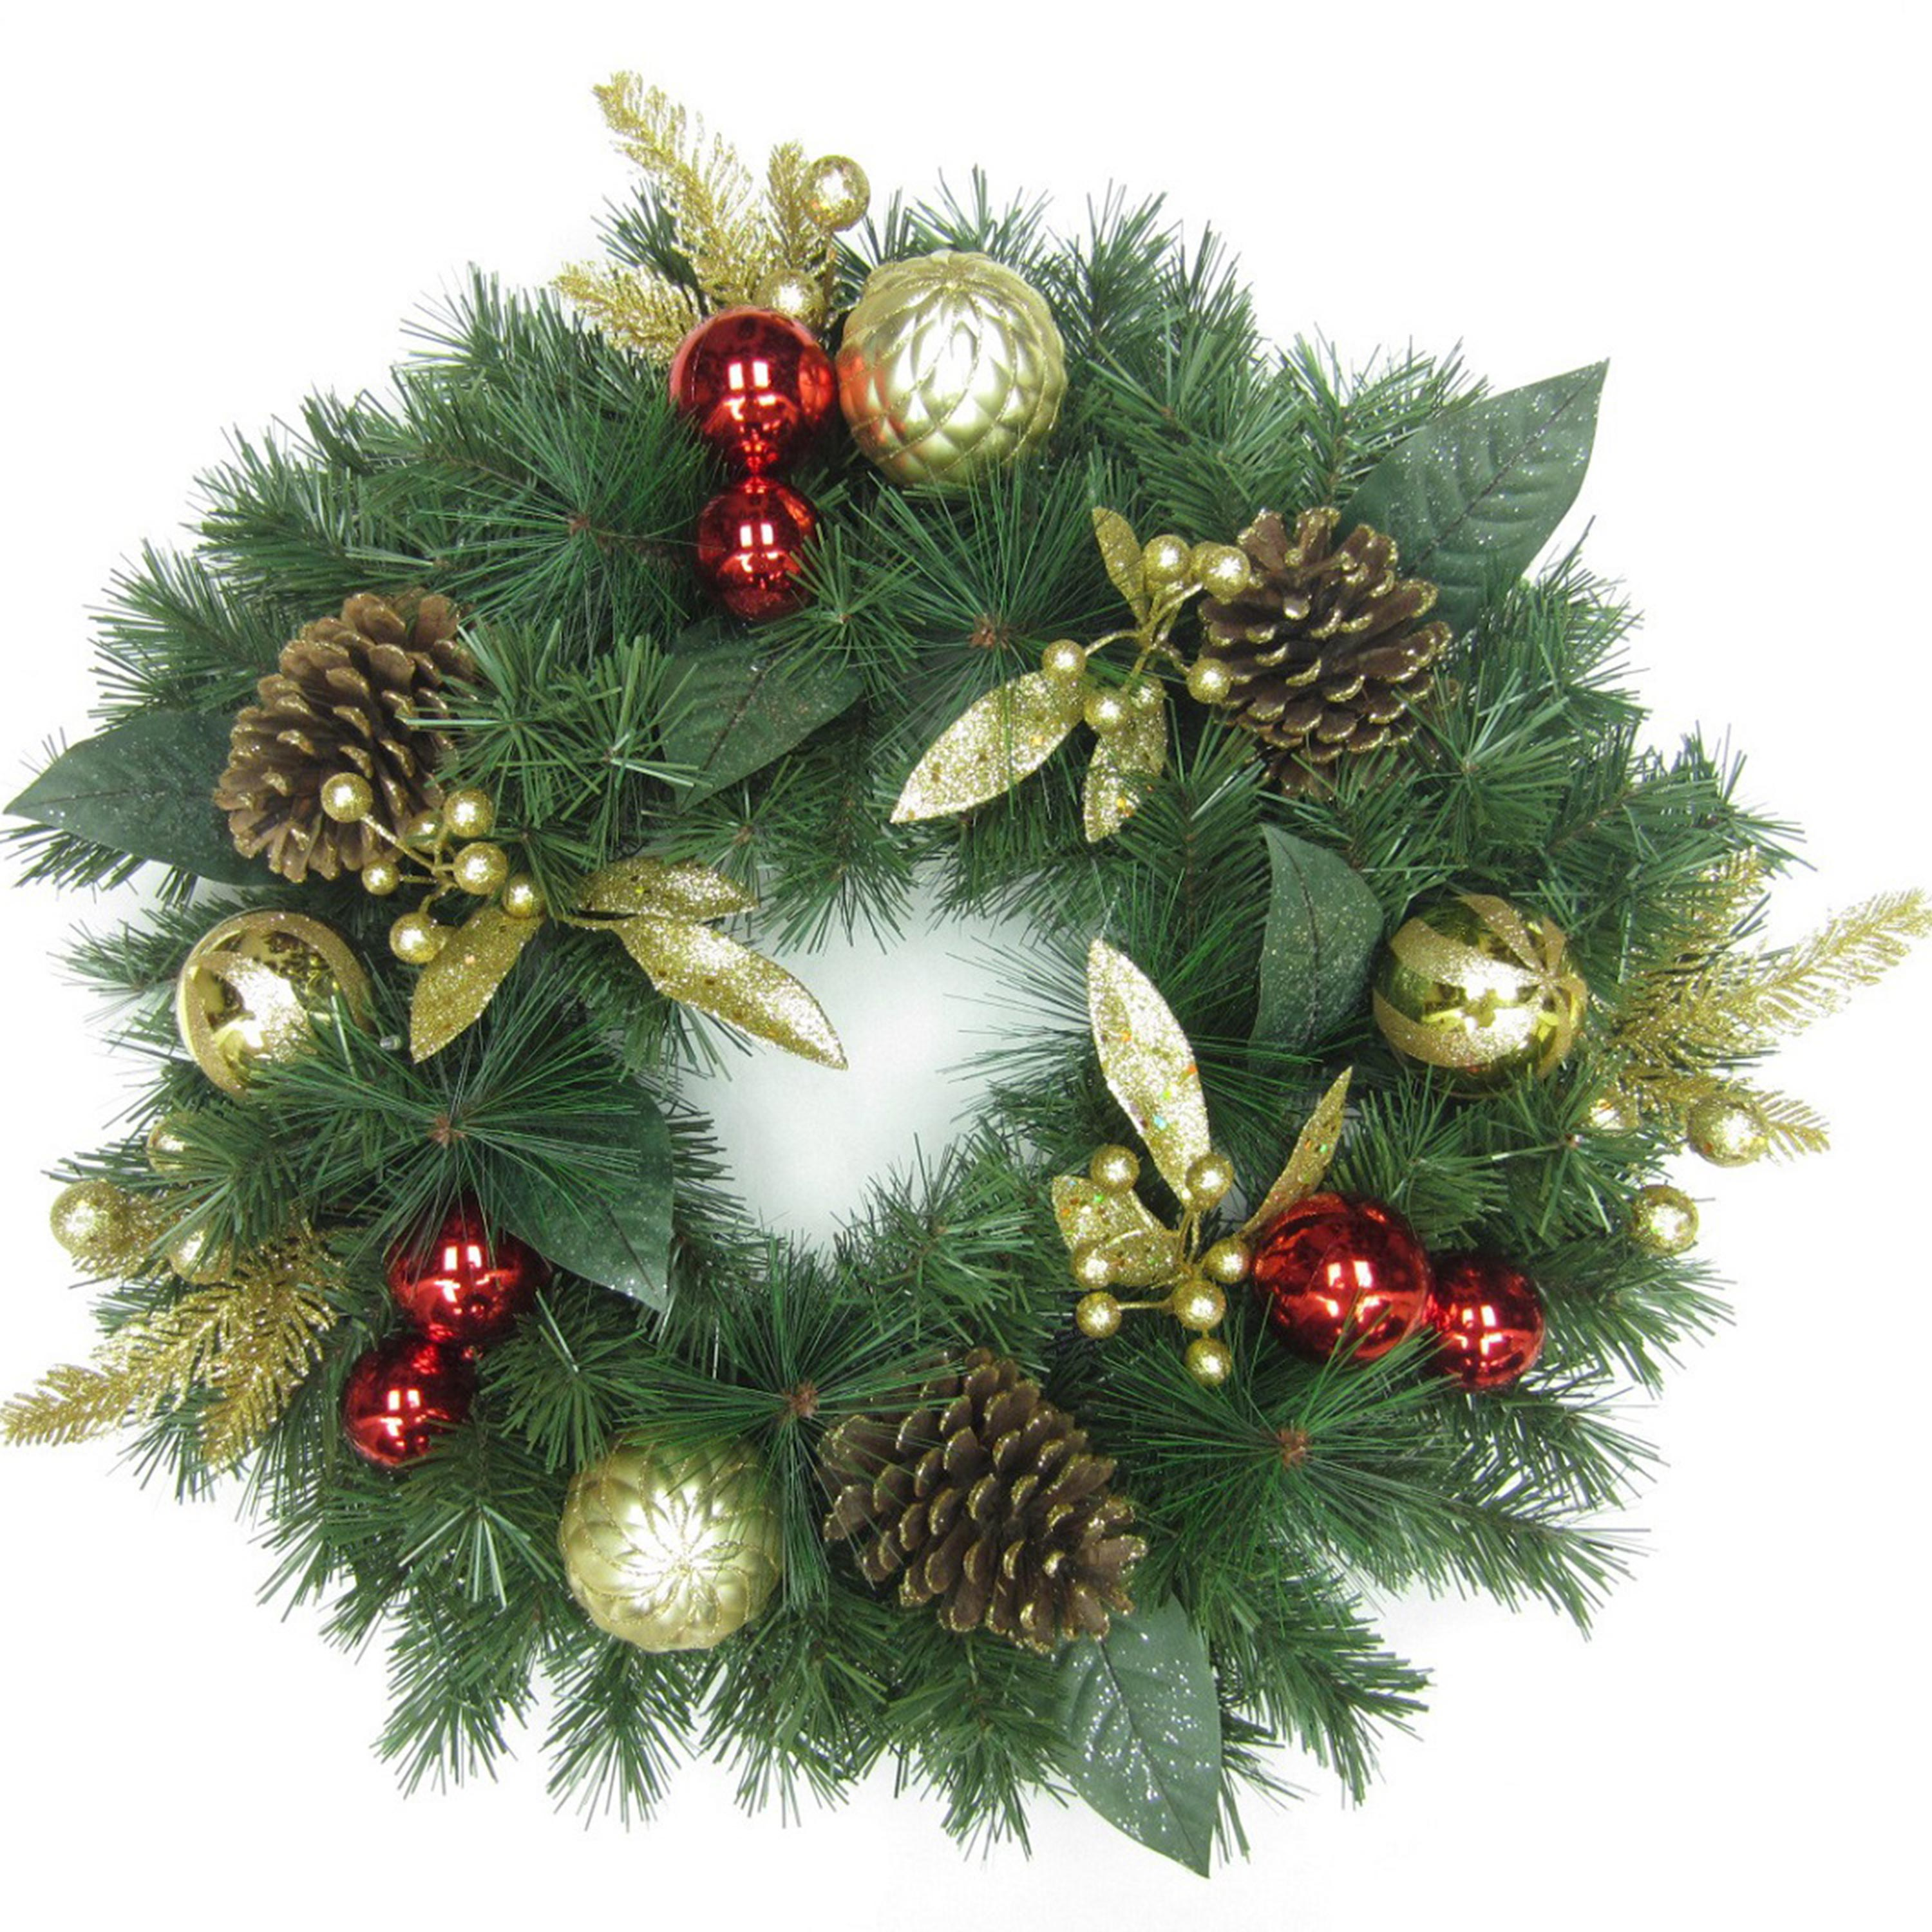 buy cheap christmas door wreath compare products prices. Black Bedroom Furniture Sets. Home Design Ideas